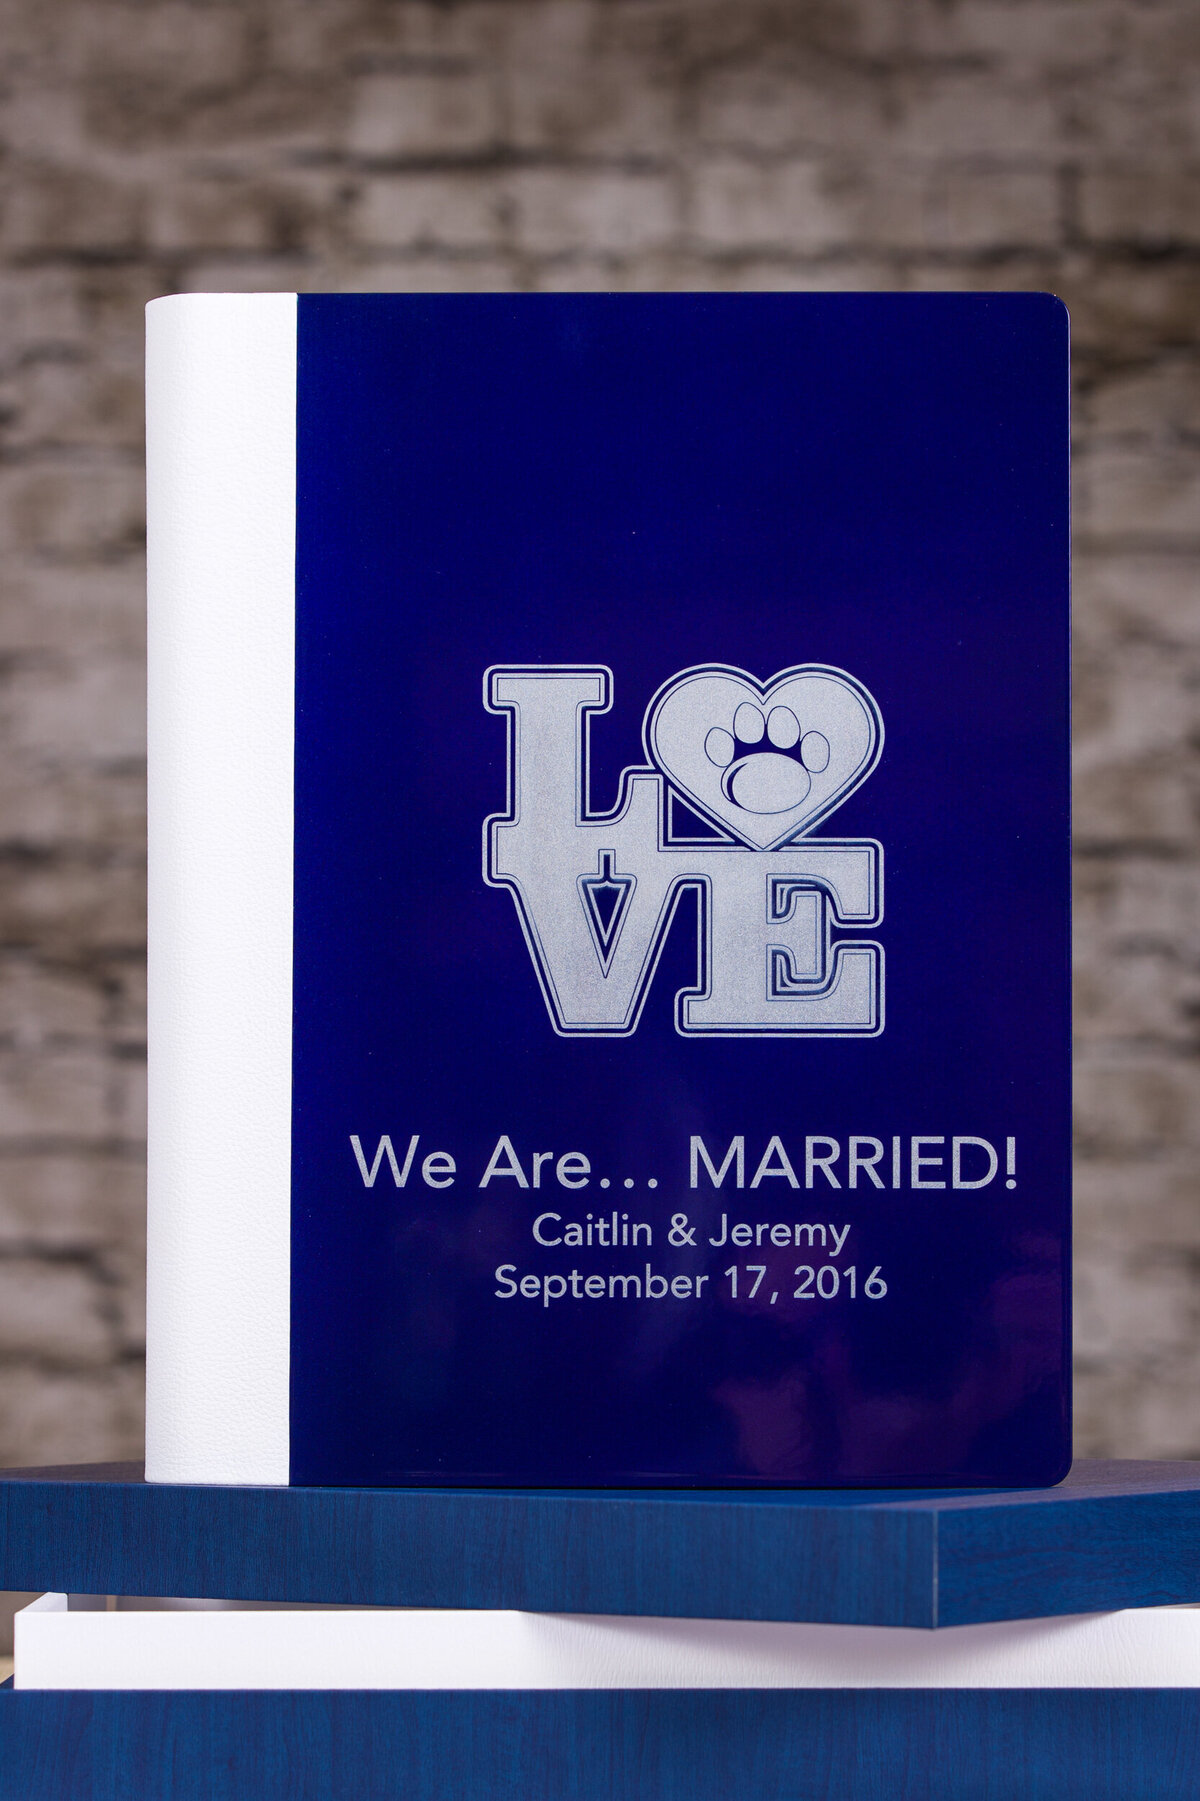 We Are Penn State Wedding Album